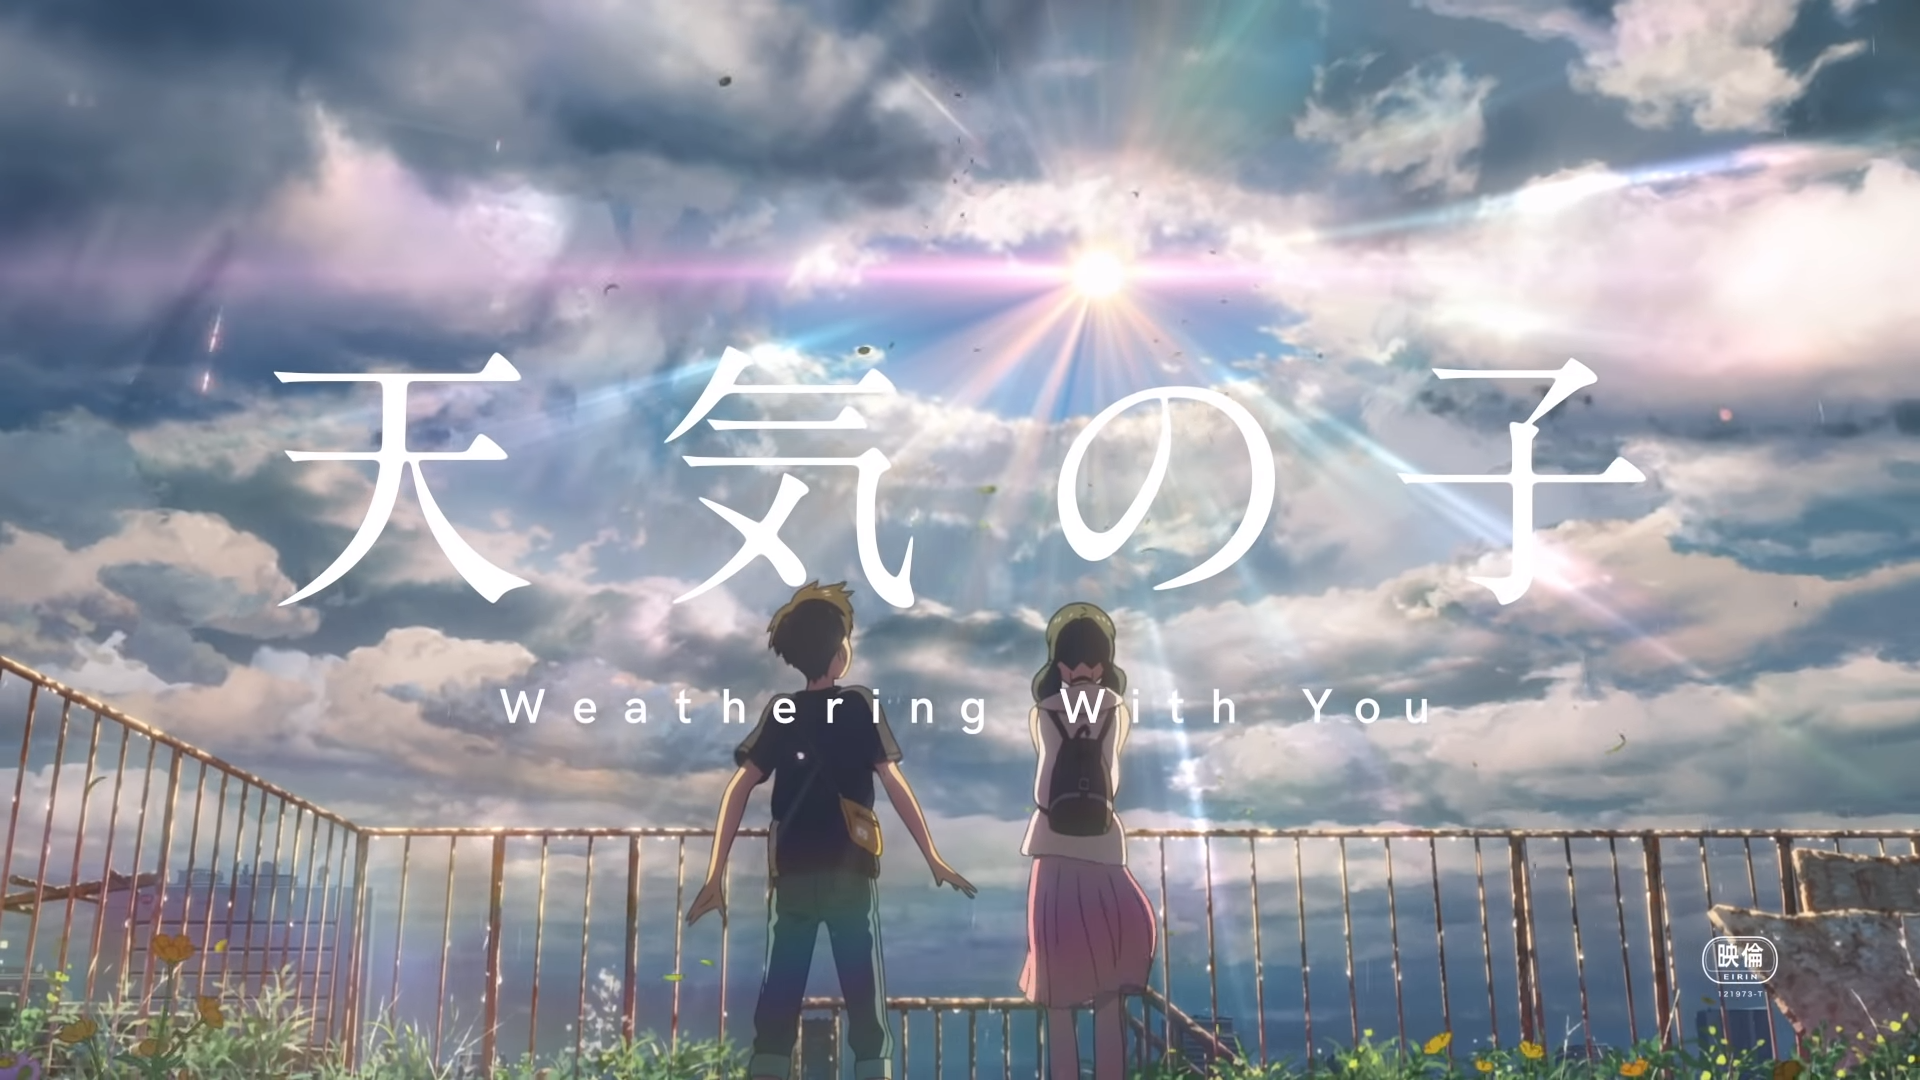 𝔾𝕠𝕠𝕘𝕝𝕖𝔻𝕠𝕔𝕤 Weathering With You 2020 Full Movie